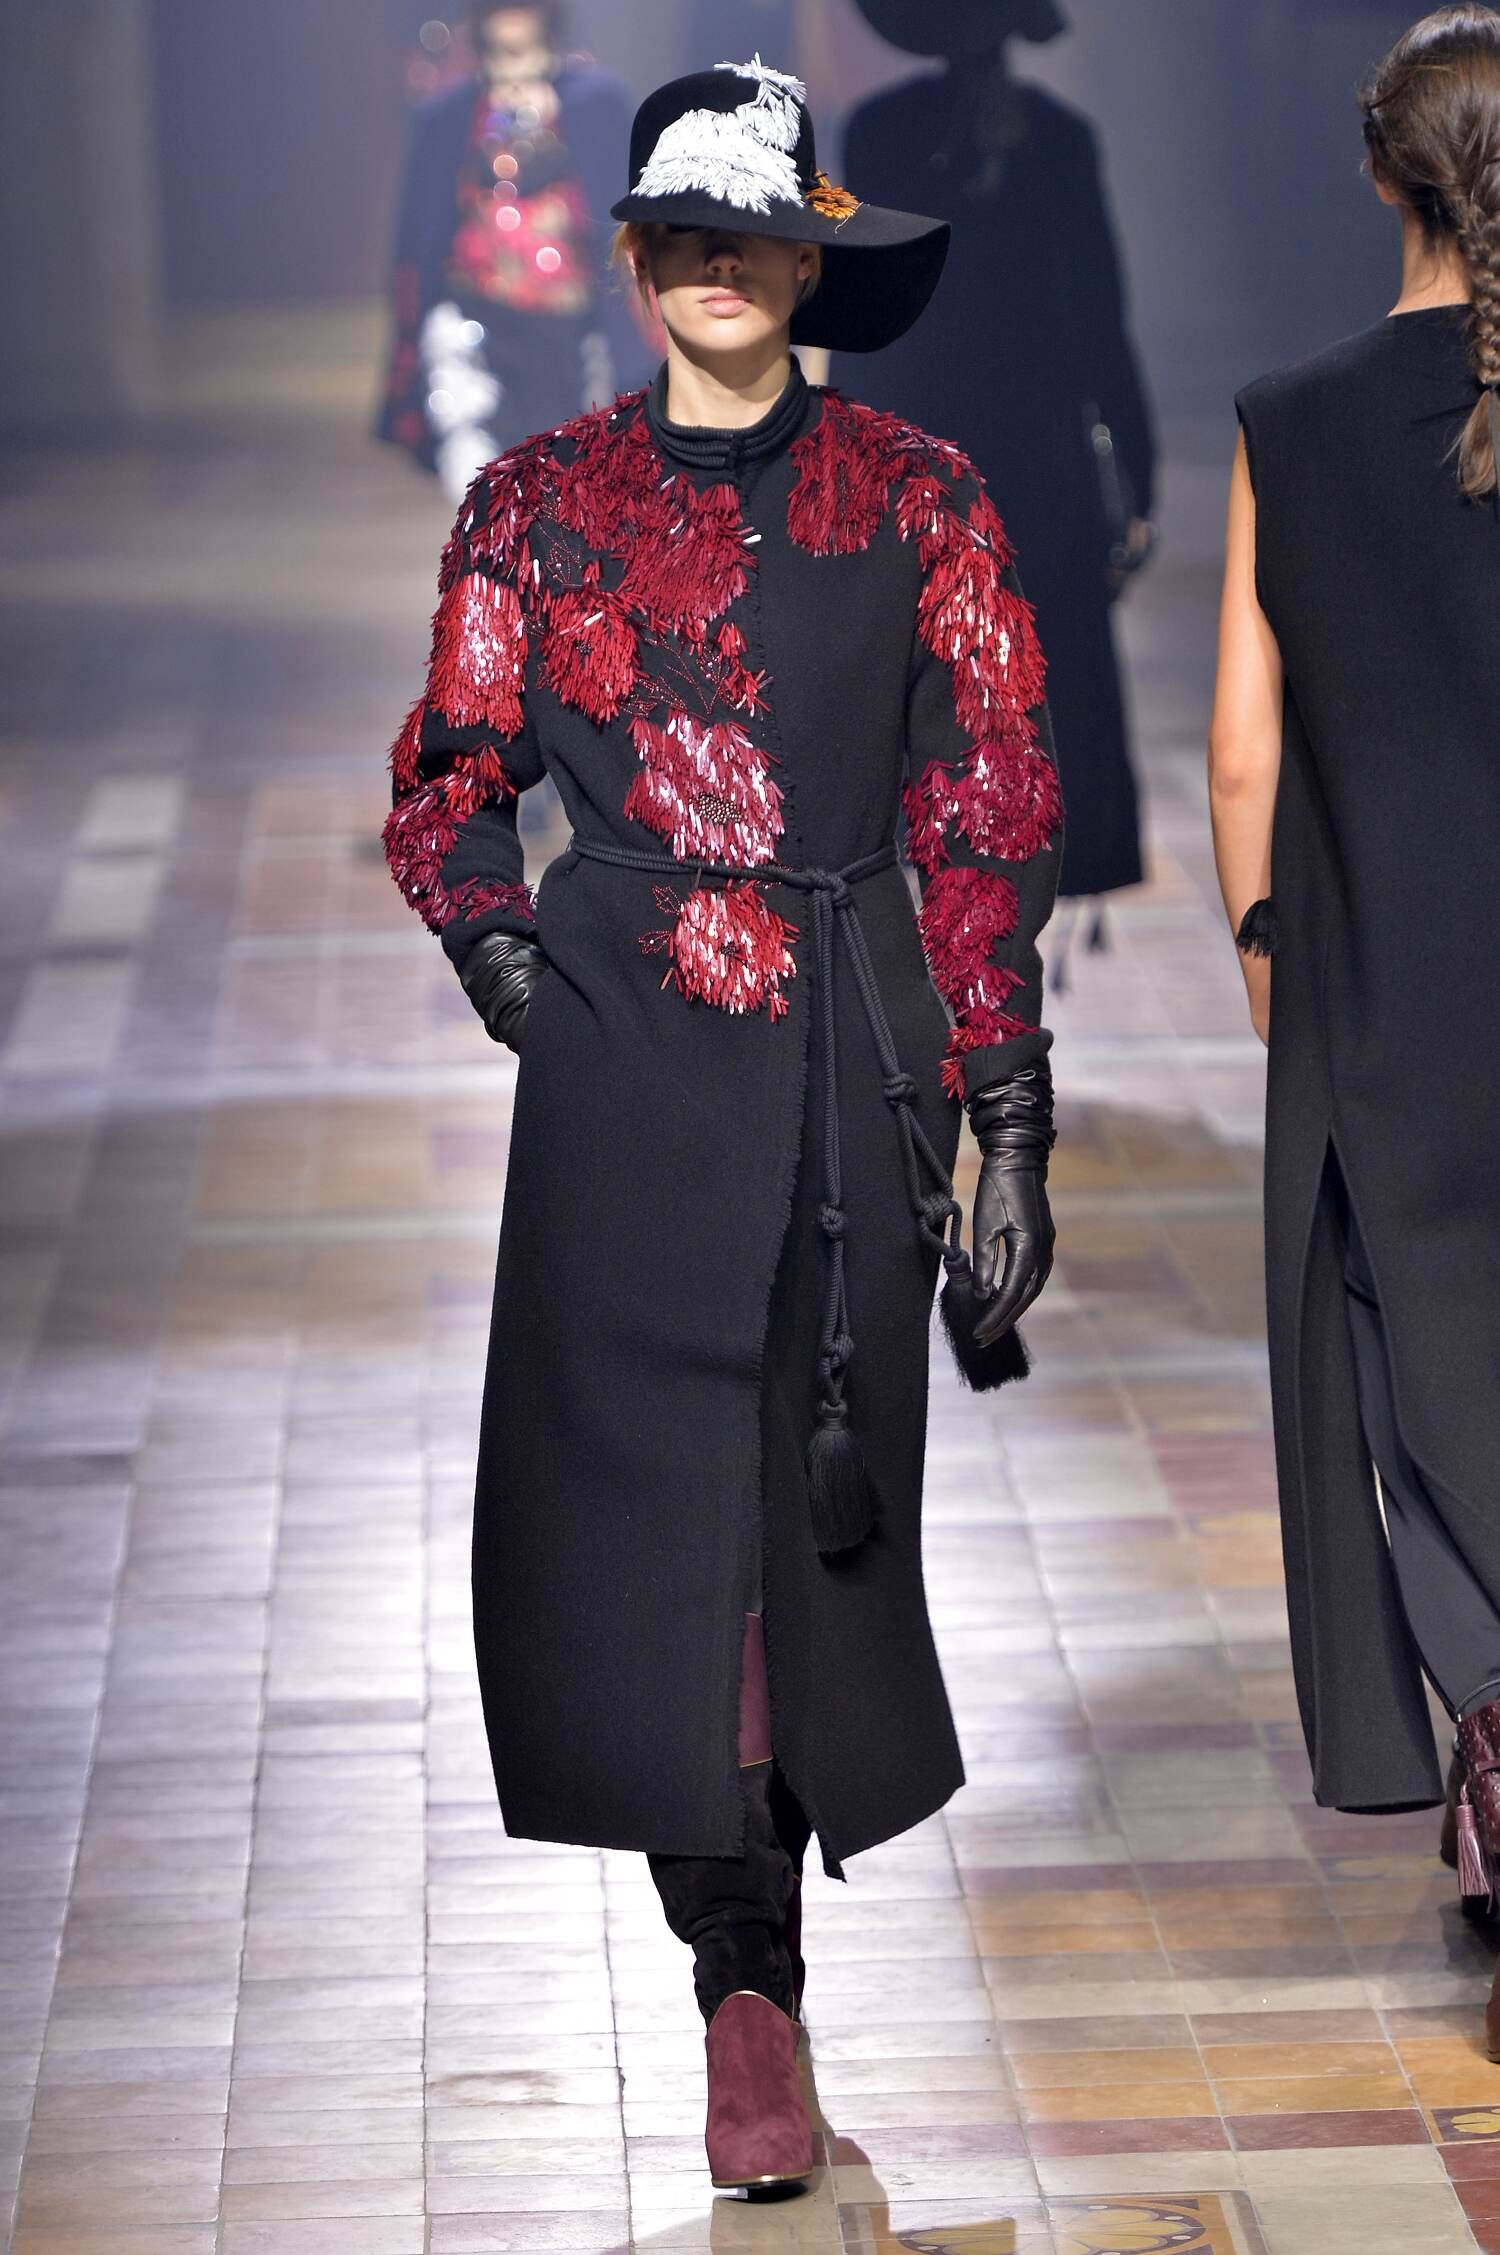 2015 Fall Fashion Woman Lanvin Collection